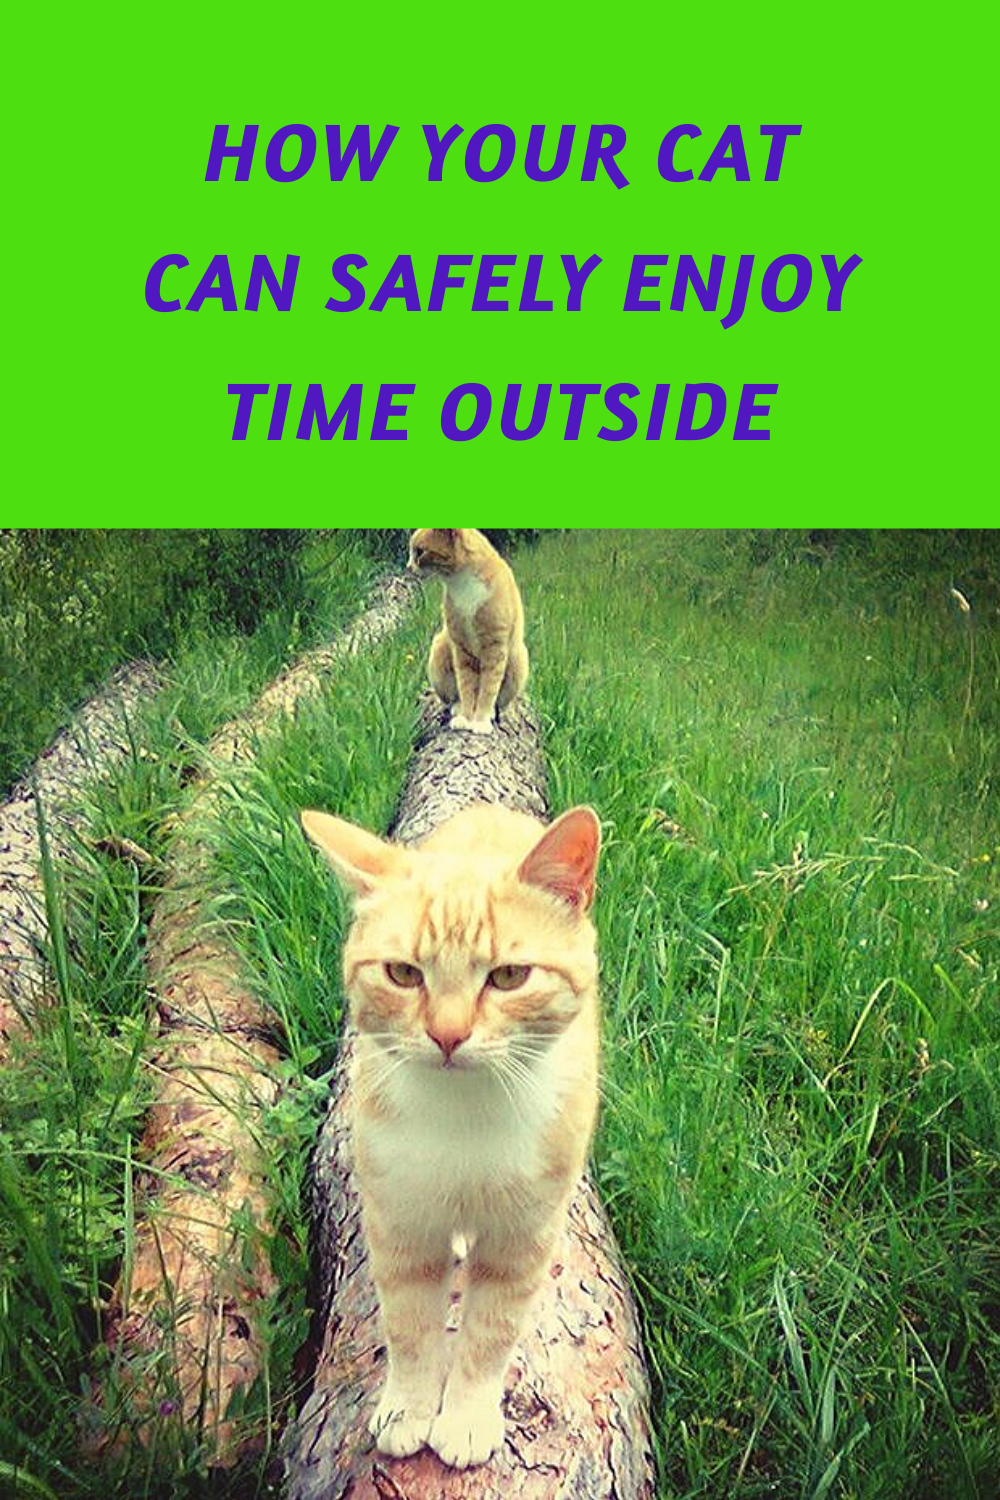 How Your Cat Can Safely Enjoy Time Outside In 2020 Cats Feline Health Enjoy Time